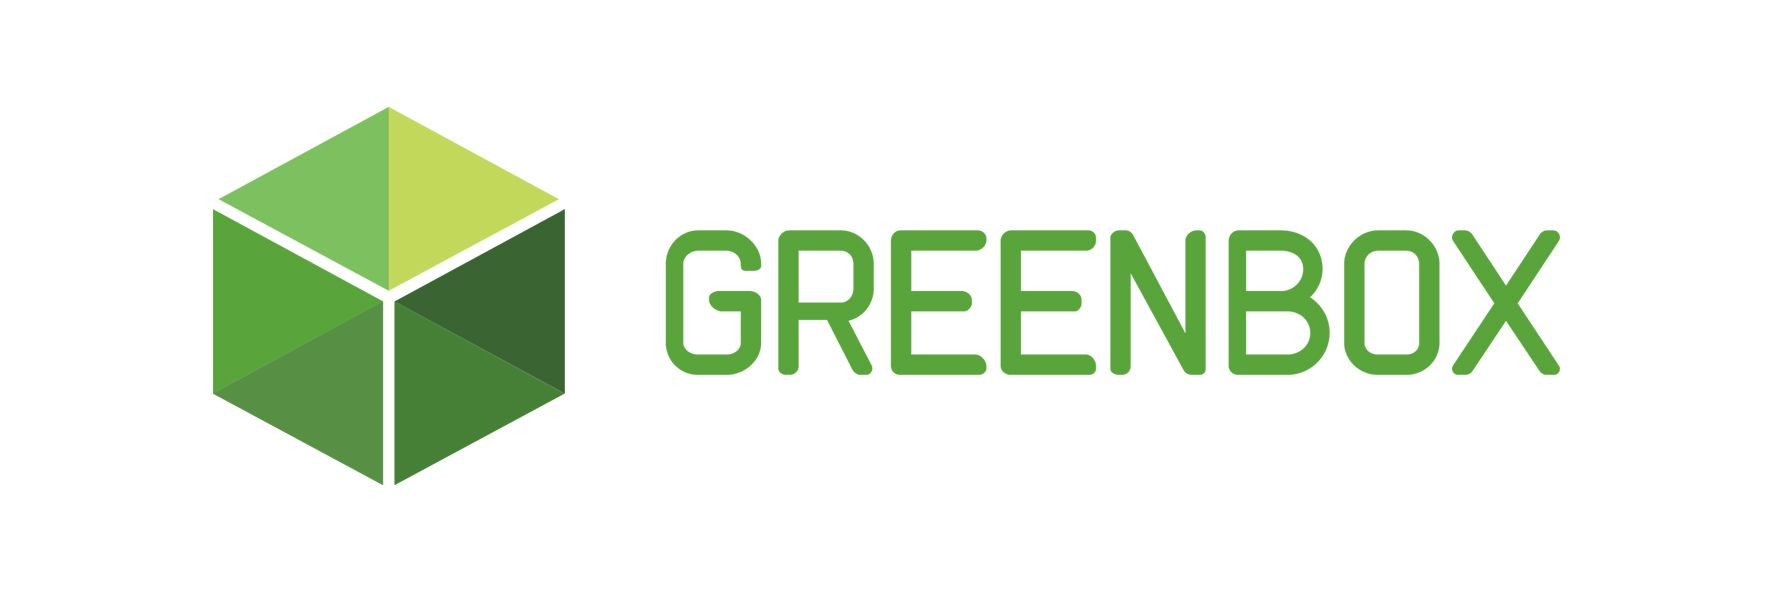 GREENBOOX